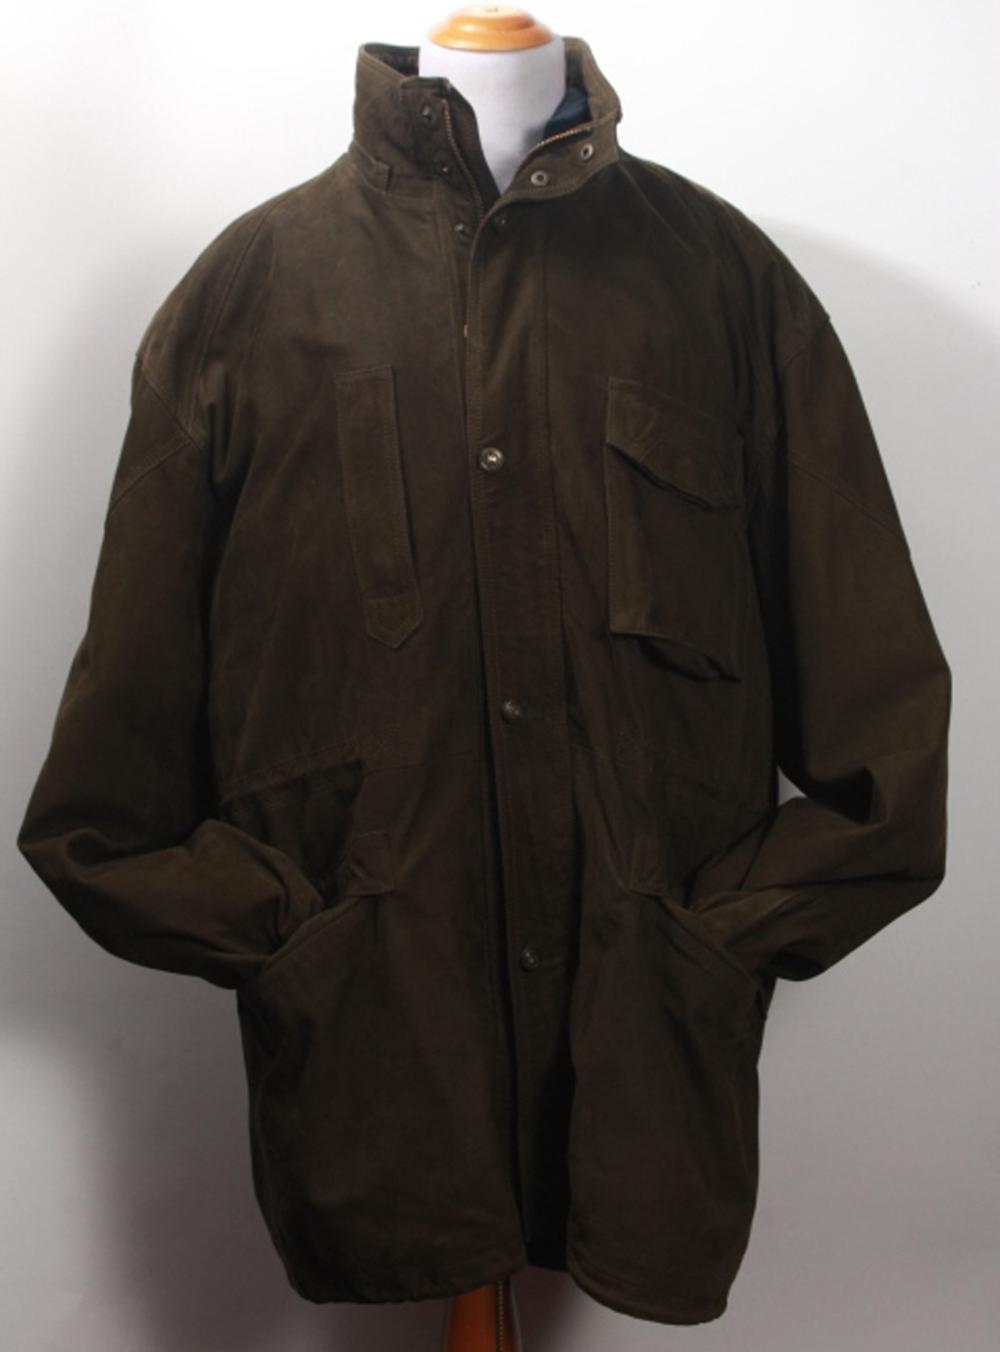 Marco Pierguidi Leather & Down Filled Coat